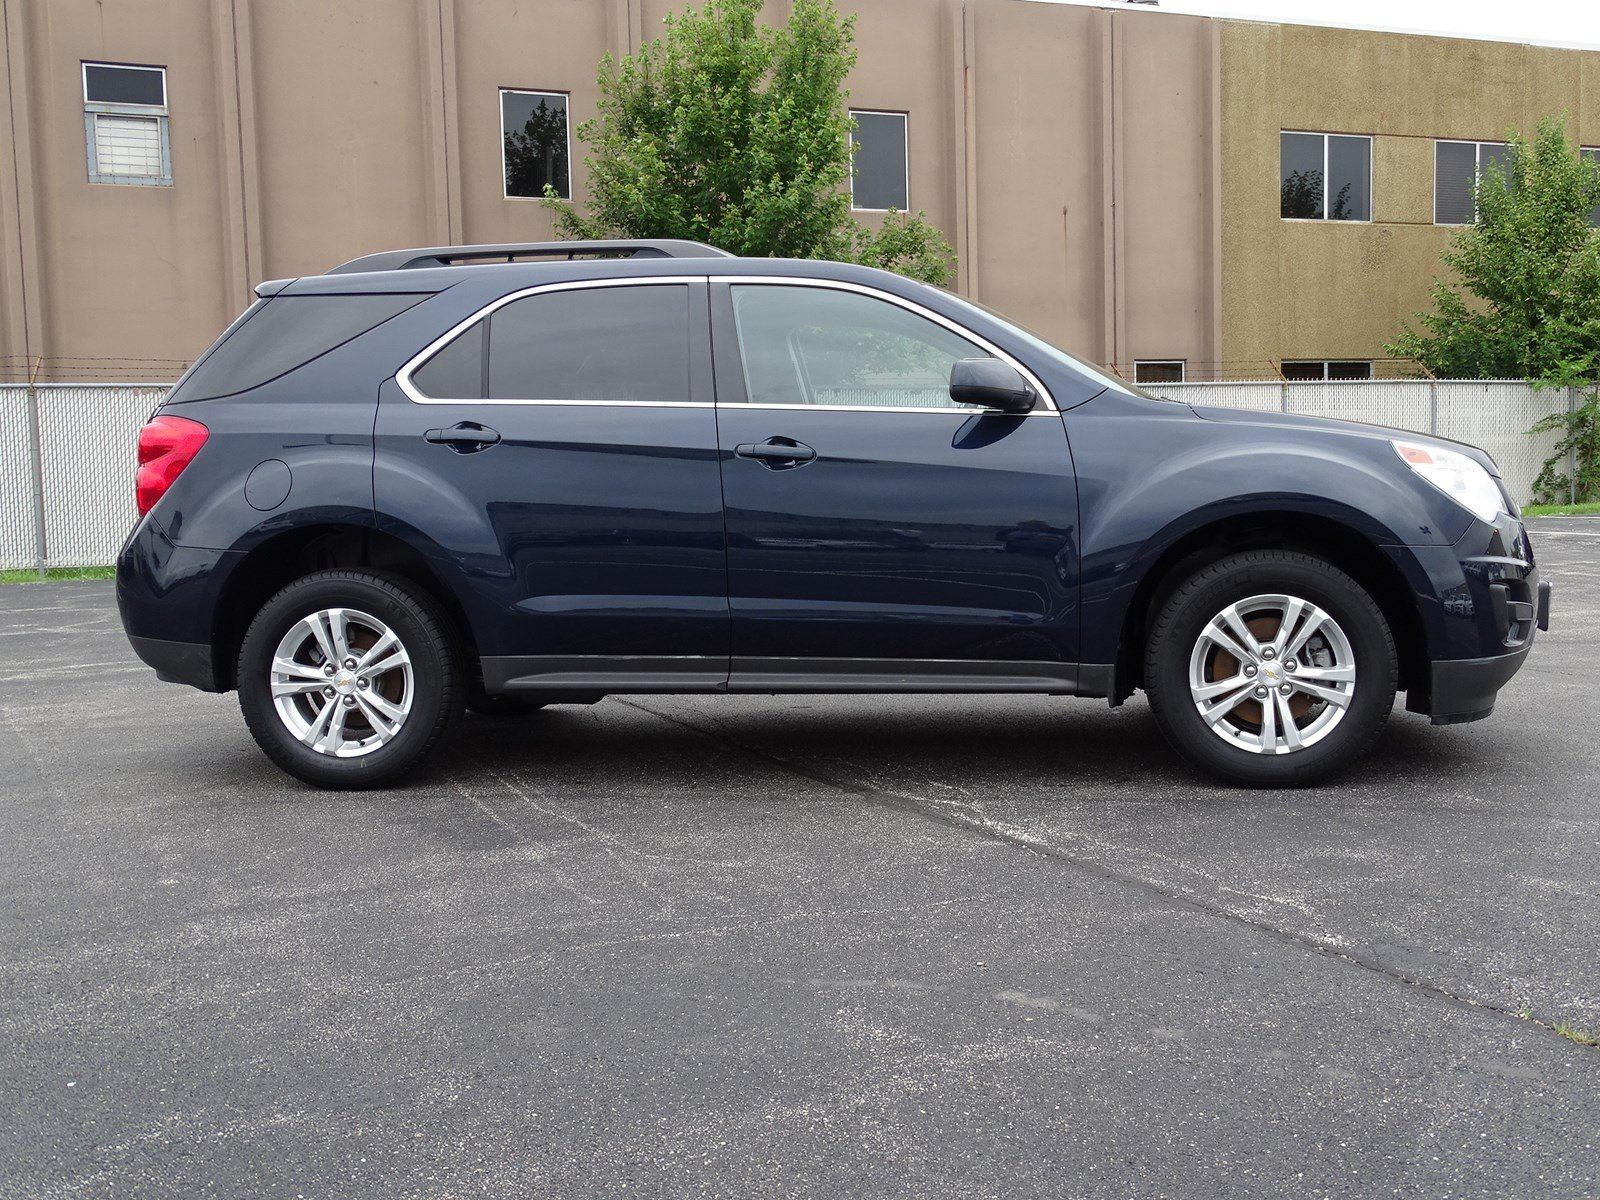 lt sport pre owned chevrolet of traverse inventory naperville in fwd used utility